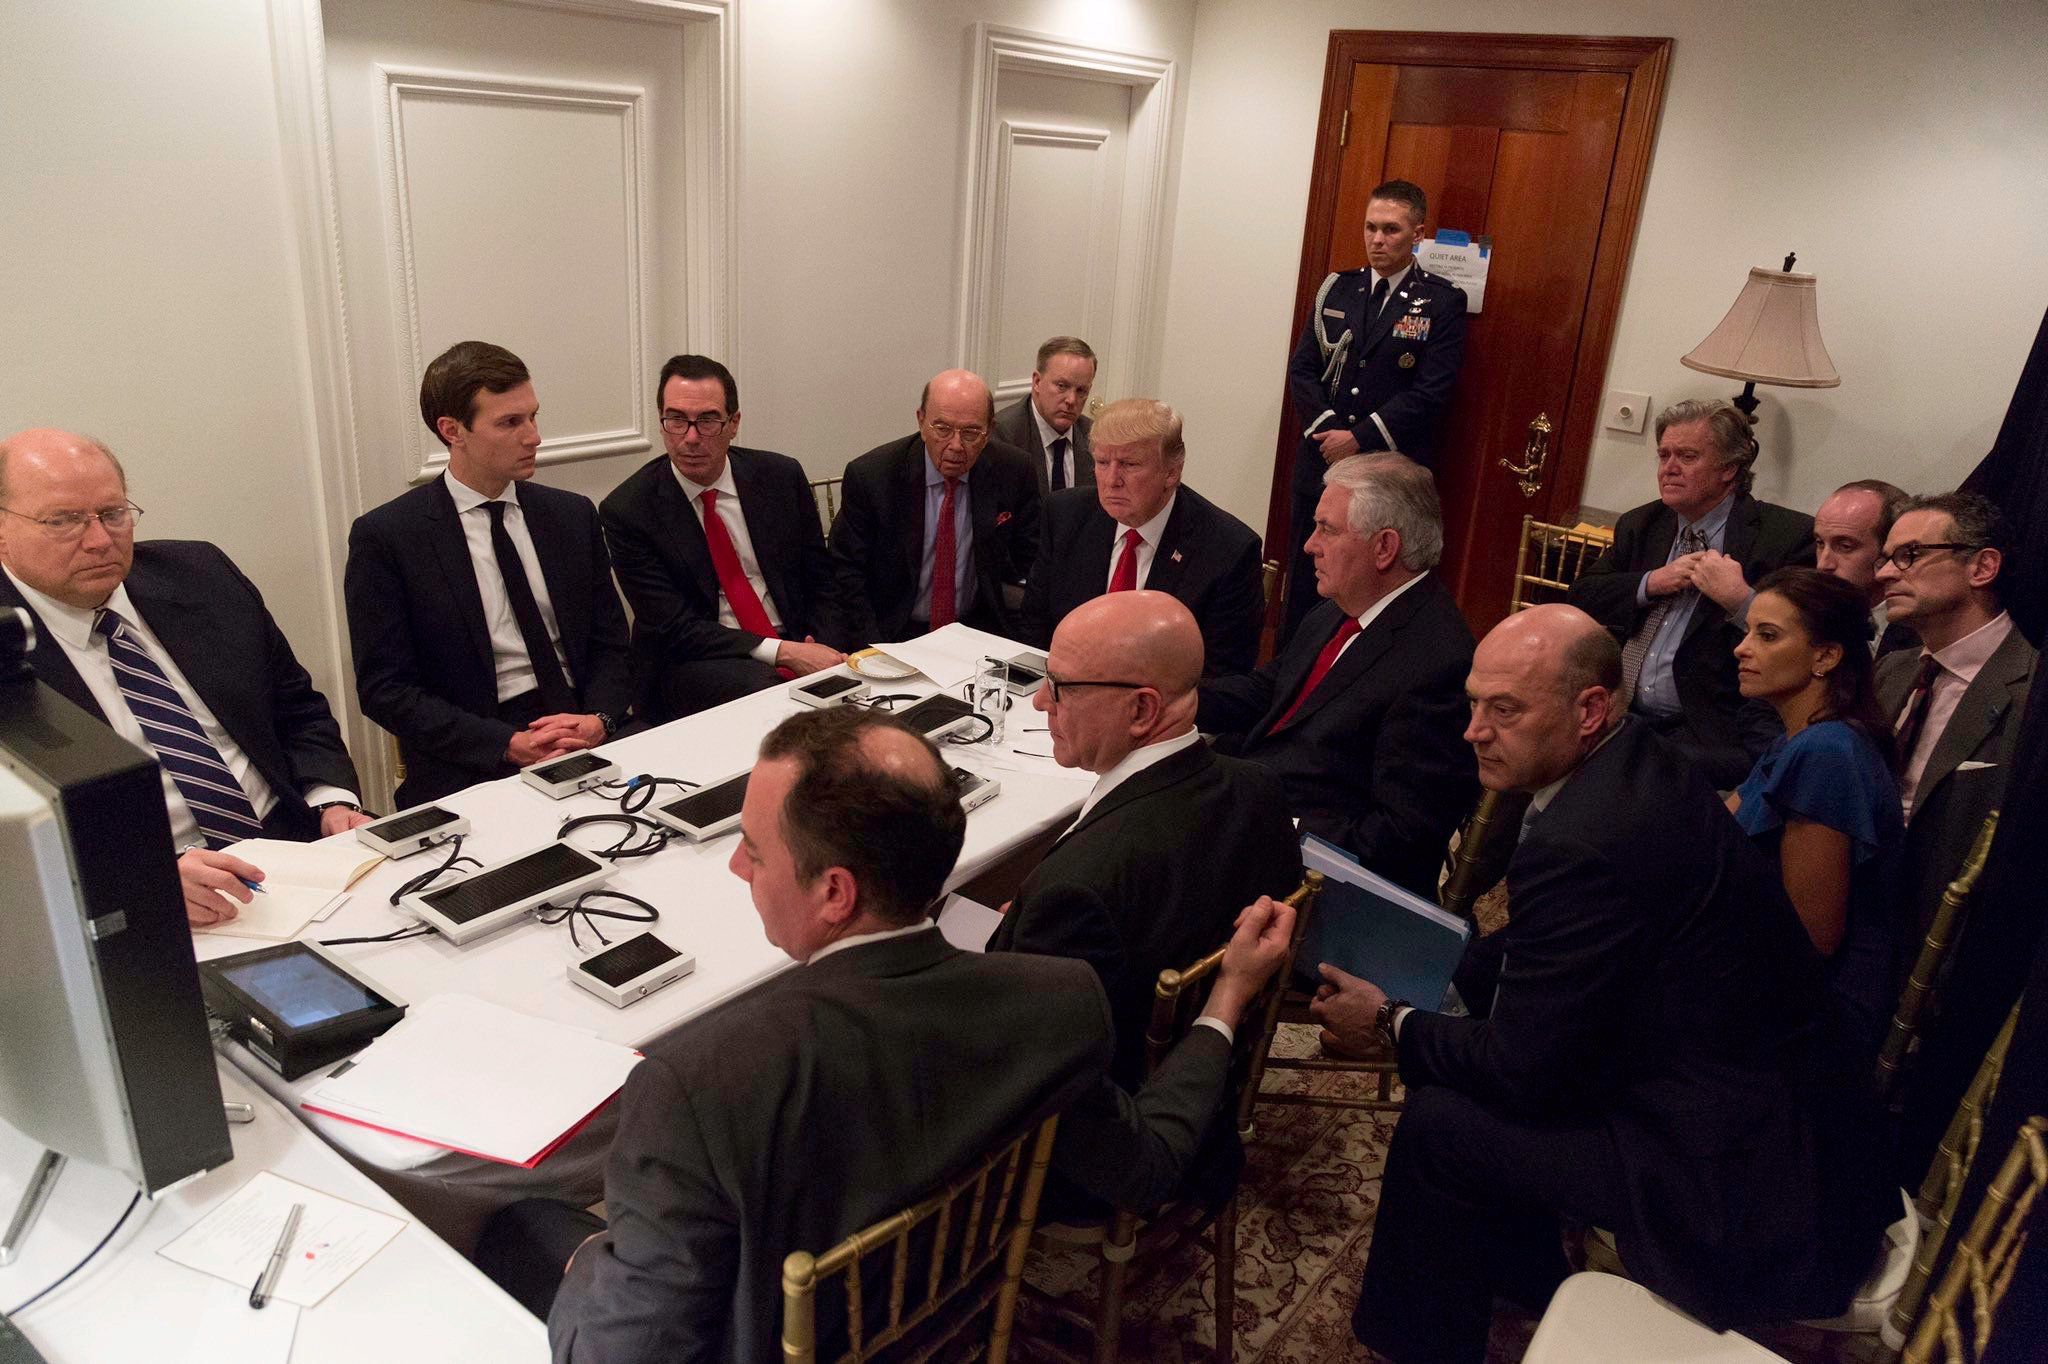 U.S. President Donald Trump is shown in an official White House handout image meeting with his National  Security team and being briefed by Chairman of the Joint Chiefs of Staff General Joseph Dunford via secure video teleconference after a missile strike on Syria while inside the Sensitive Compartmented Information Facility at his Mar-a-Lago resort in West Palm Beach, Florida, U.S. April 6, 2017. White House Press Secretary Sean Spicer stated that this image has been digitally edited for security purposes when he released the photo via Twitter on April 7, 2017. Pictures clockwise from top L: Deputy Chief of Staff Joe Hagin, Senior Advisor Jared Kushner, Treasury Secretary Steven Mnuchin, Commerce Secretary Wilbur Ross, White House Press Secretary Sean Spicer, President Trump, Secretary of State Rex Tillerson, Senior advisor Steve Bannon, Senior advisor Stephen Miller,  national security aide Michael Anton, Deputy National Security Advisor for Strategy Dina Powell, National Economic Council Director Gary Cohn, National security adviser Lt. Gen. H.R. McMaster and Chief of Staff Reince Priebus.    The White House/Handout via REUTERS ATTENTION EDITORS - THIS IMAGE WAS PROVIDED BY A THIRD PARTY. EDITORIAL USE ONLY.  IT IS DISTRIBUTED, EXACTLY AS RECEIVED BY REUTERS, AS A SERVICE TO CLIENTS. NOT FOR SALE FOR MARKETING OR ADVERTISING CAMPAIGNS     TPX IMAGES OF THE DAY